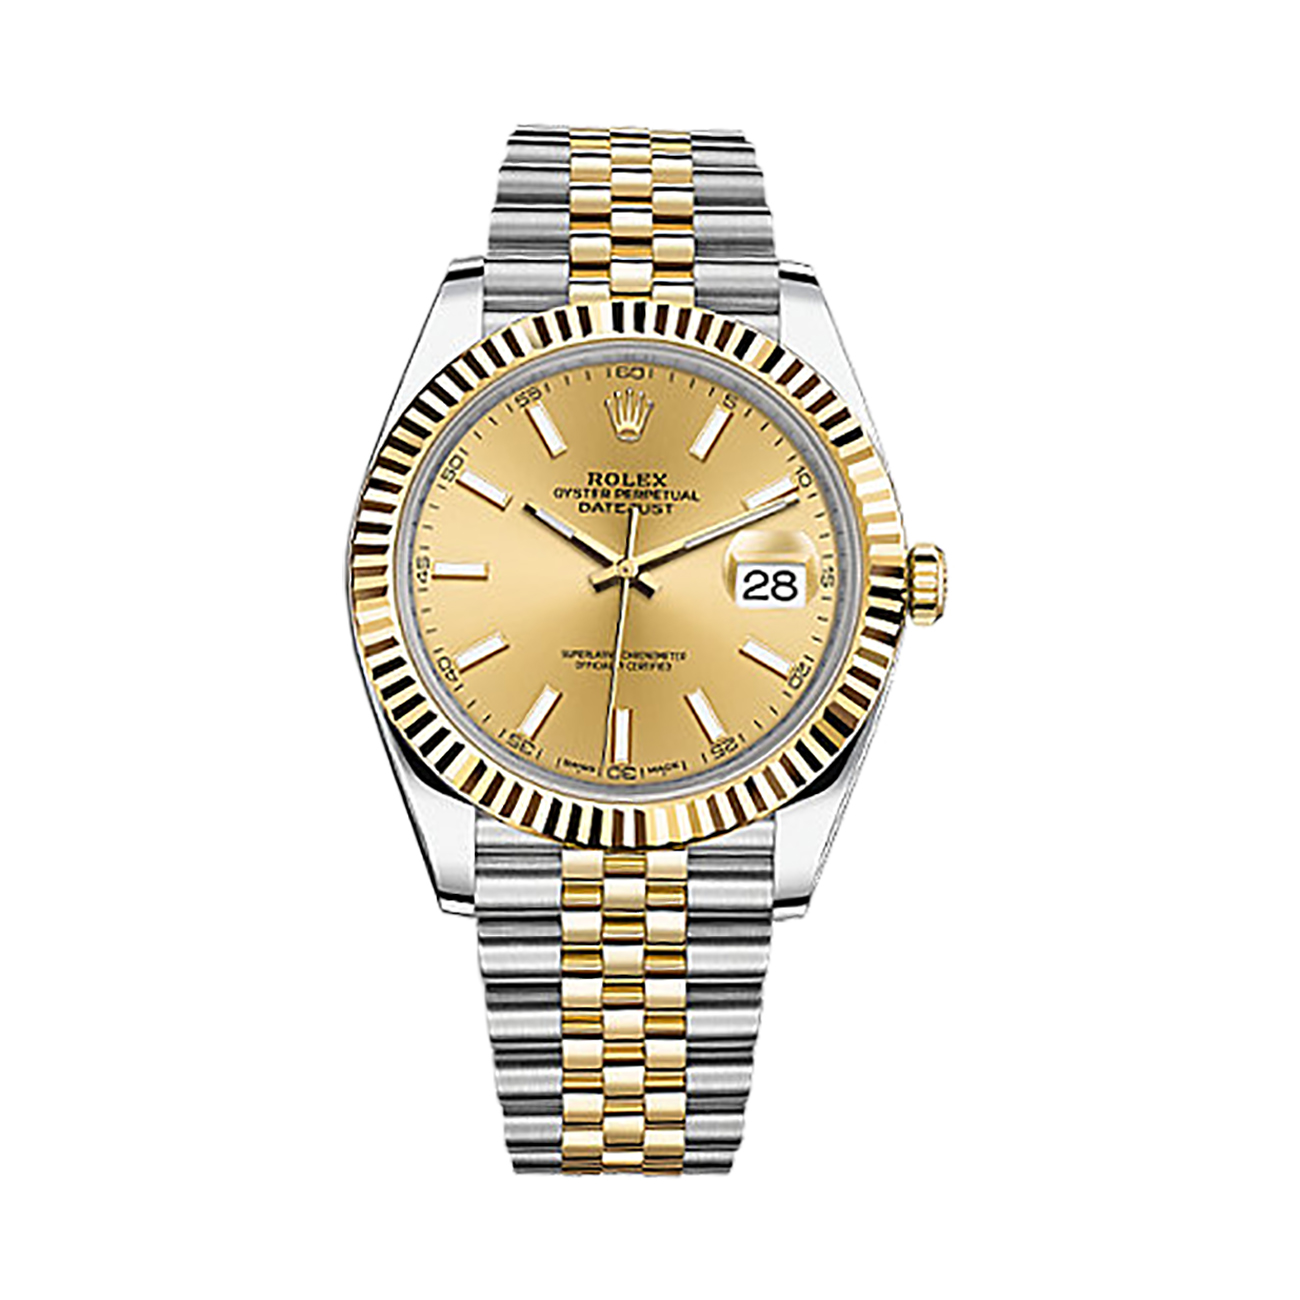 Rolex watches new models